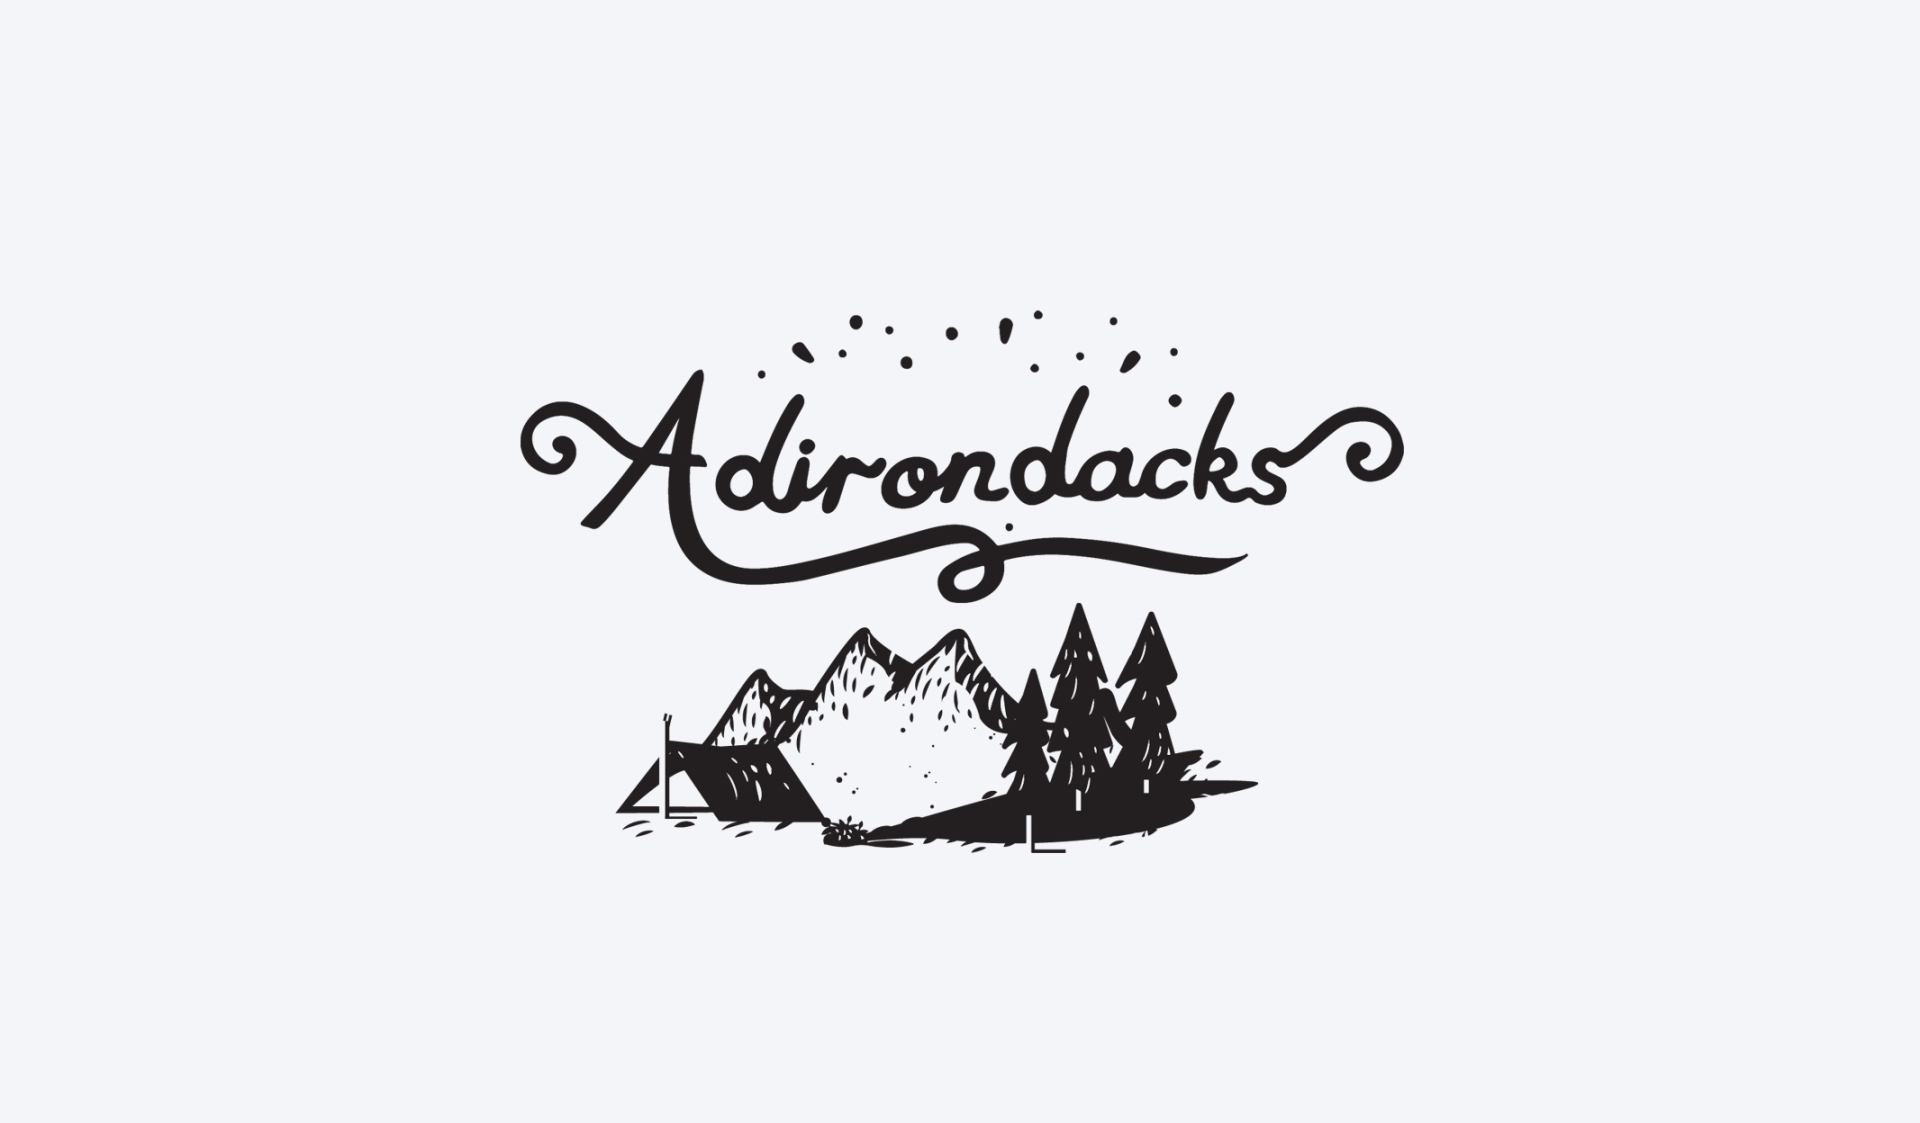 zeki-michael-adirondacks-ny-illustration-designer-design